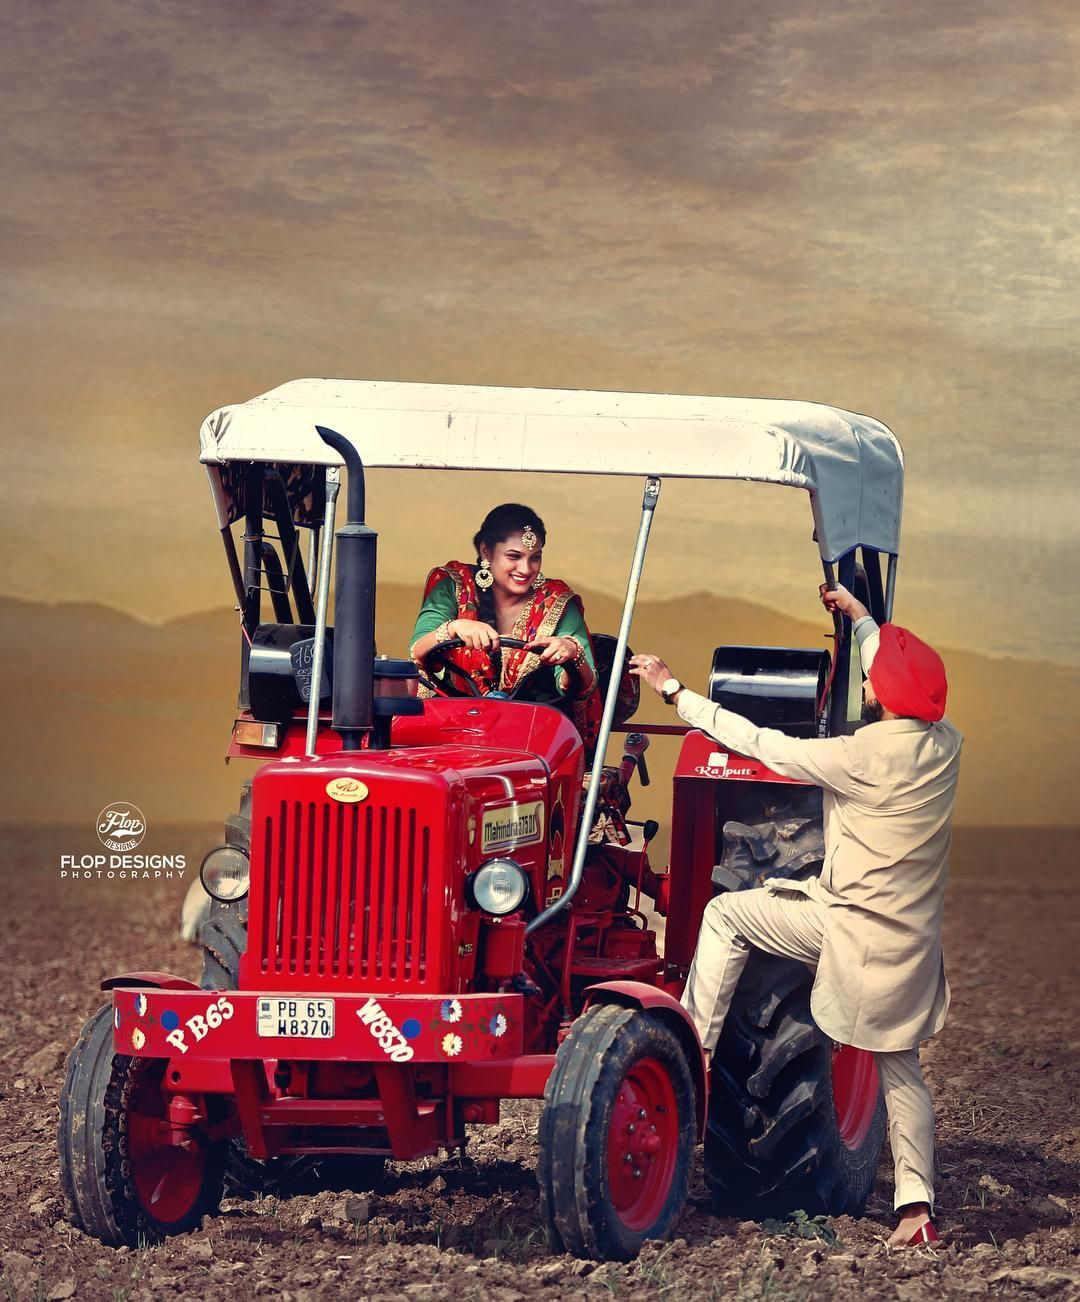 """27 Likes, 2 Comments - Flop Photography & Designs (@photographyflop) on Instagram: """"This one is amazing ! Contact 8437609095 for Pre-Wedding Still & Videoshoots  #FlopDesigns #punjabi…"""""""